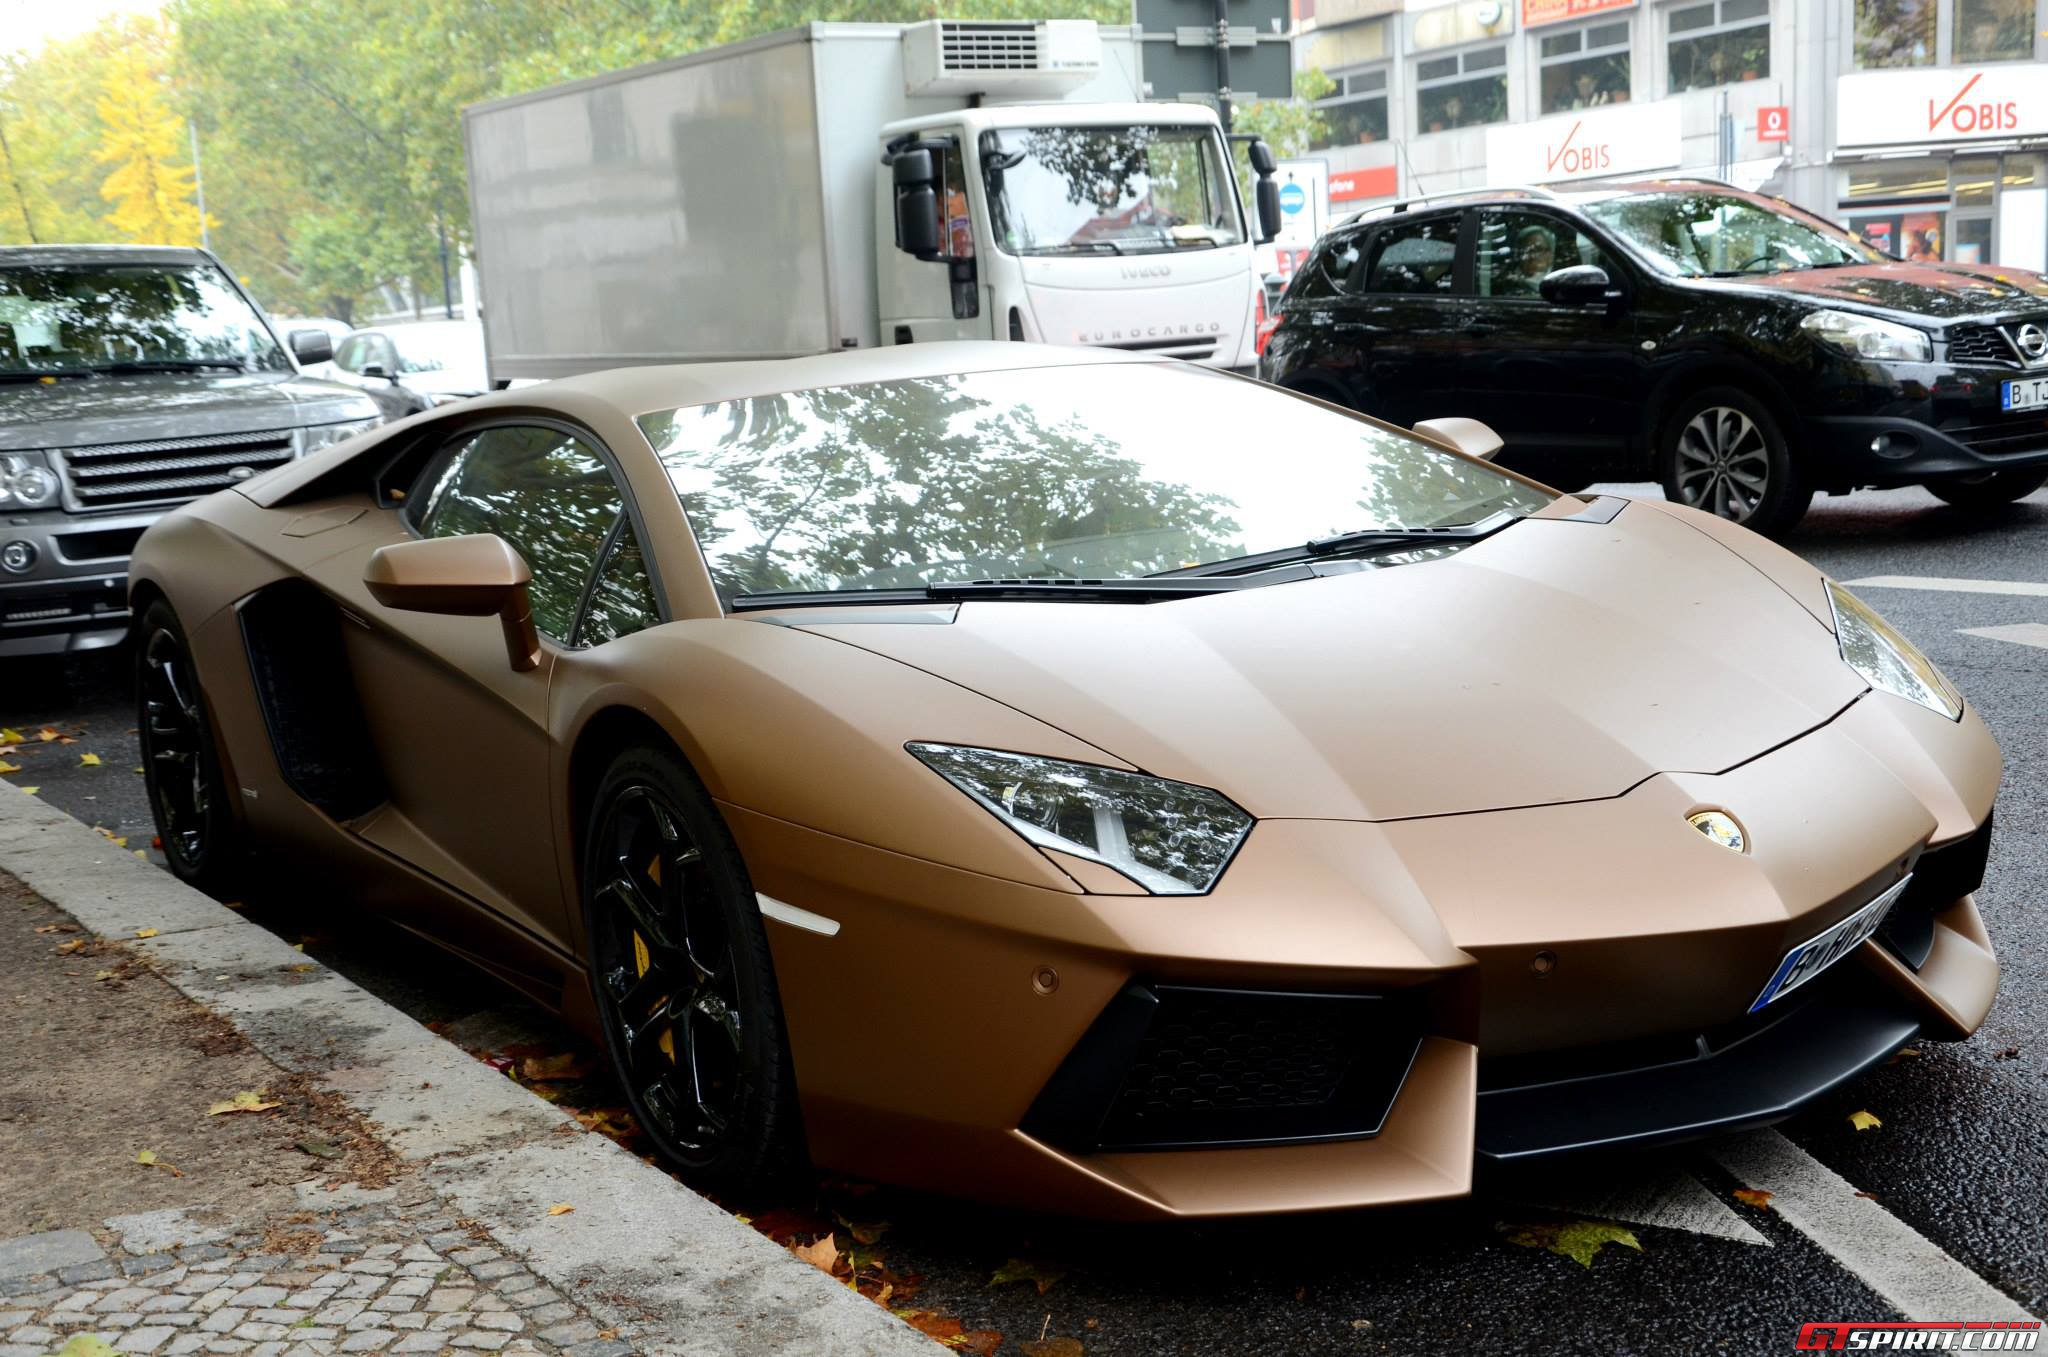 Image result for brown colour car